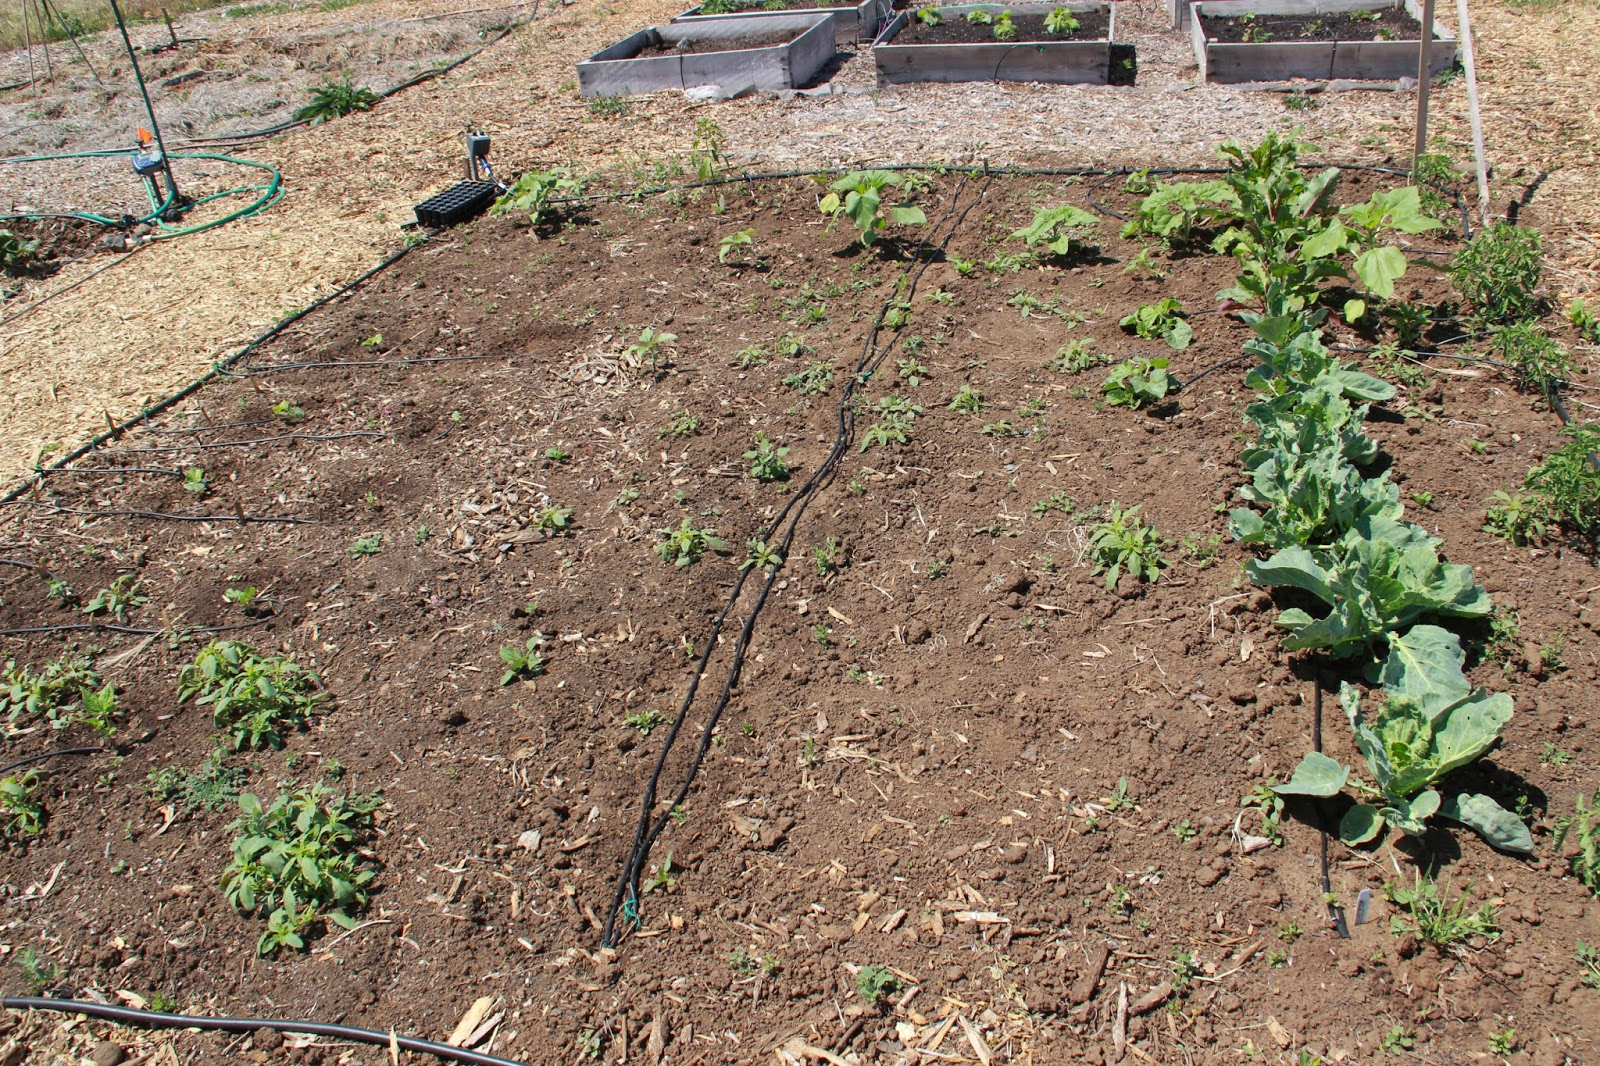 My First Garden: Photos: 7 different community garden plot designs